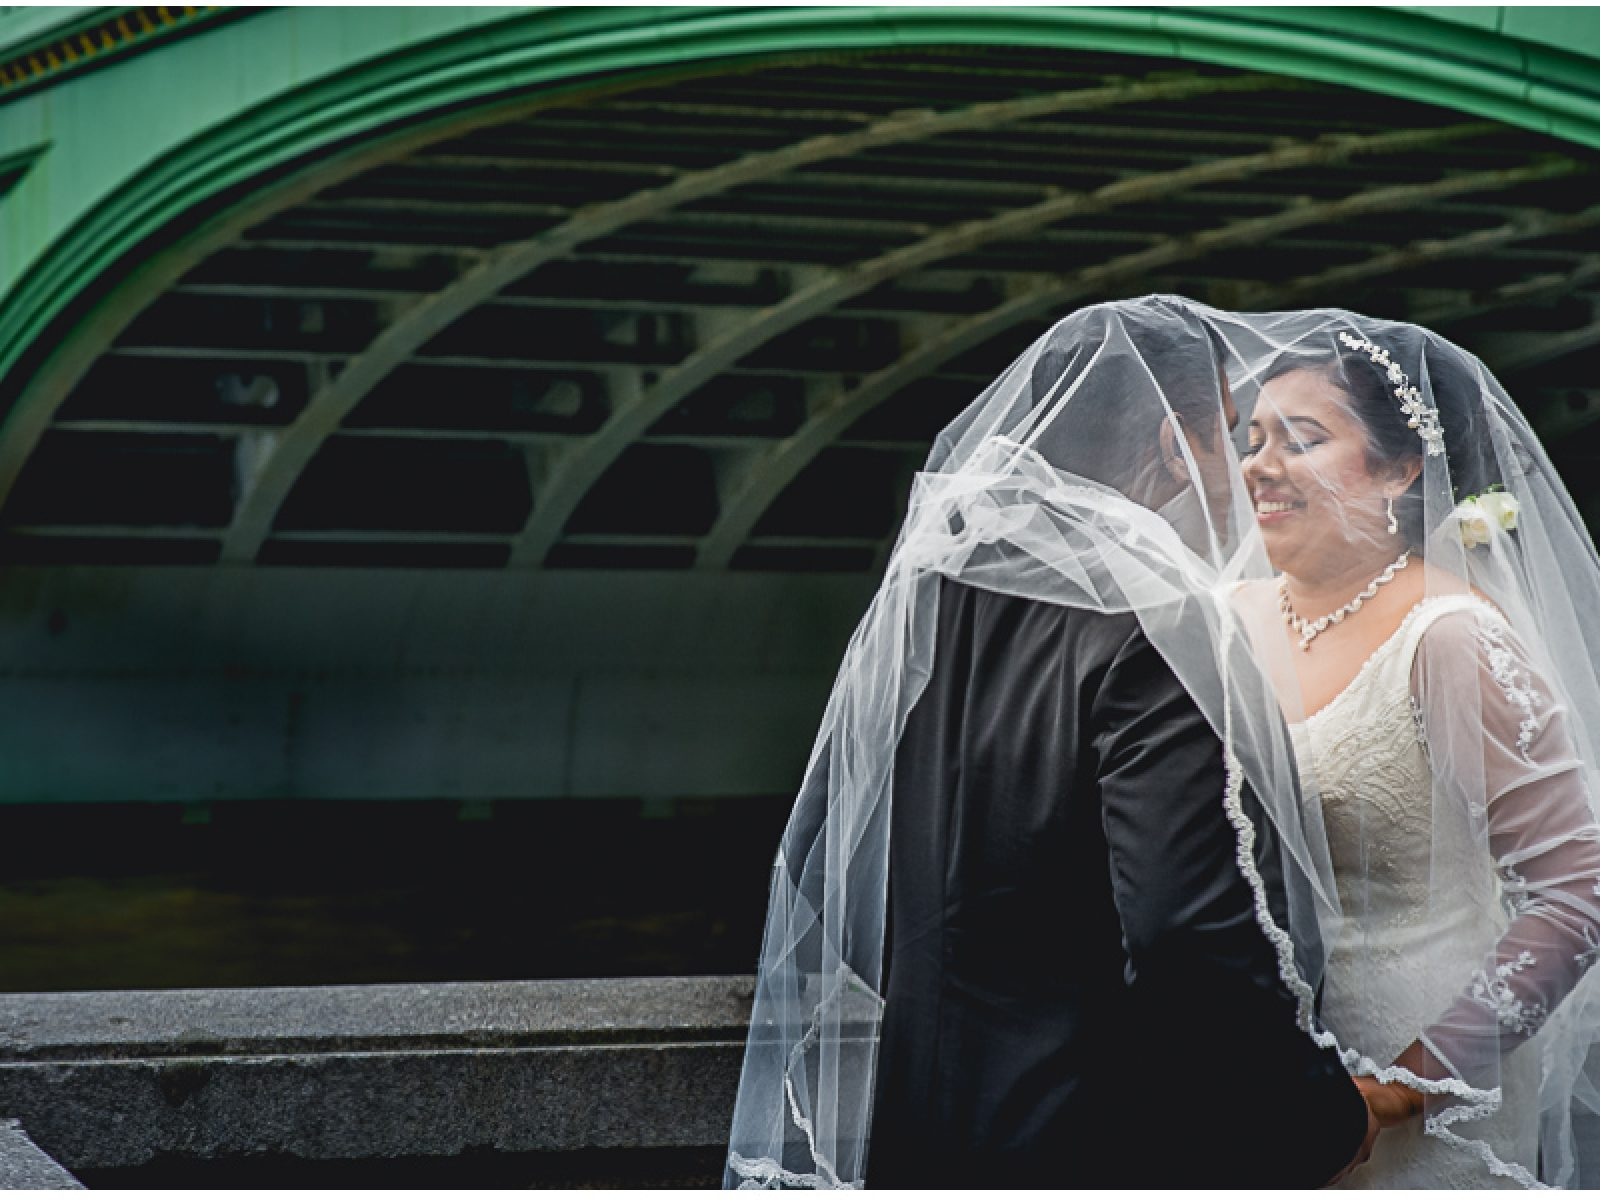 401 1600x1200 - Darshani and Anthony - wedding photographer in London